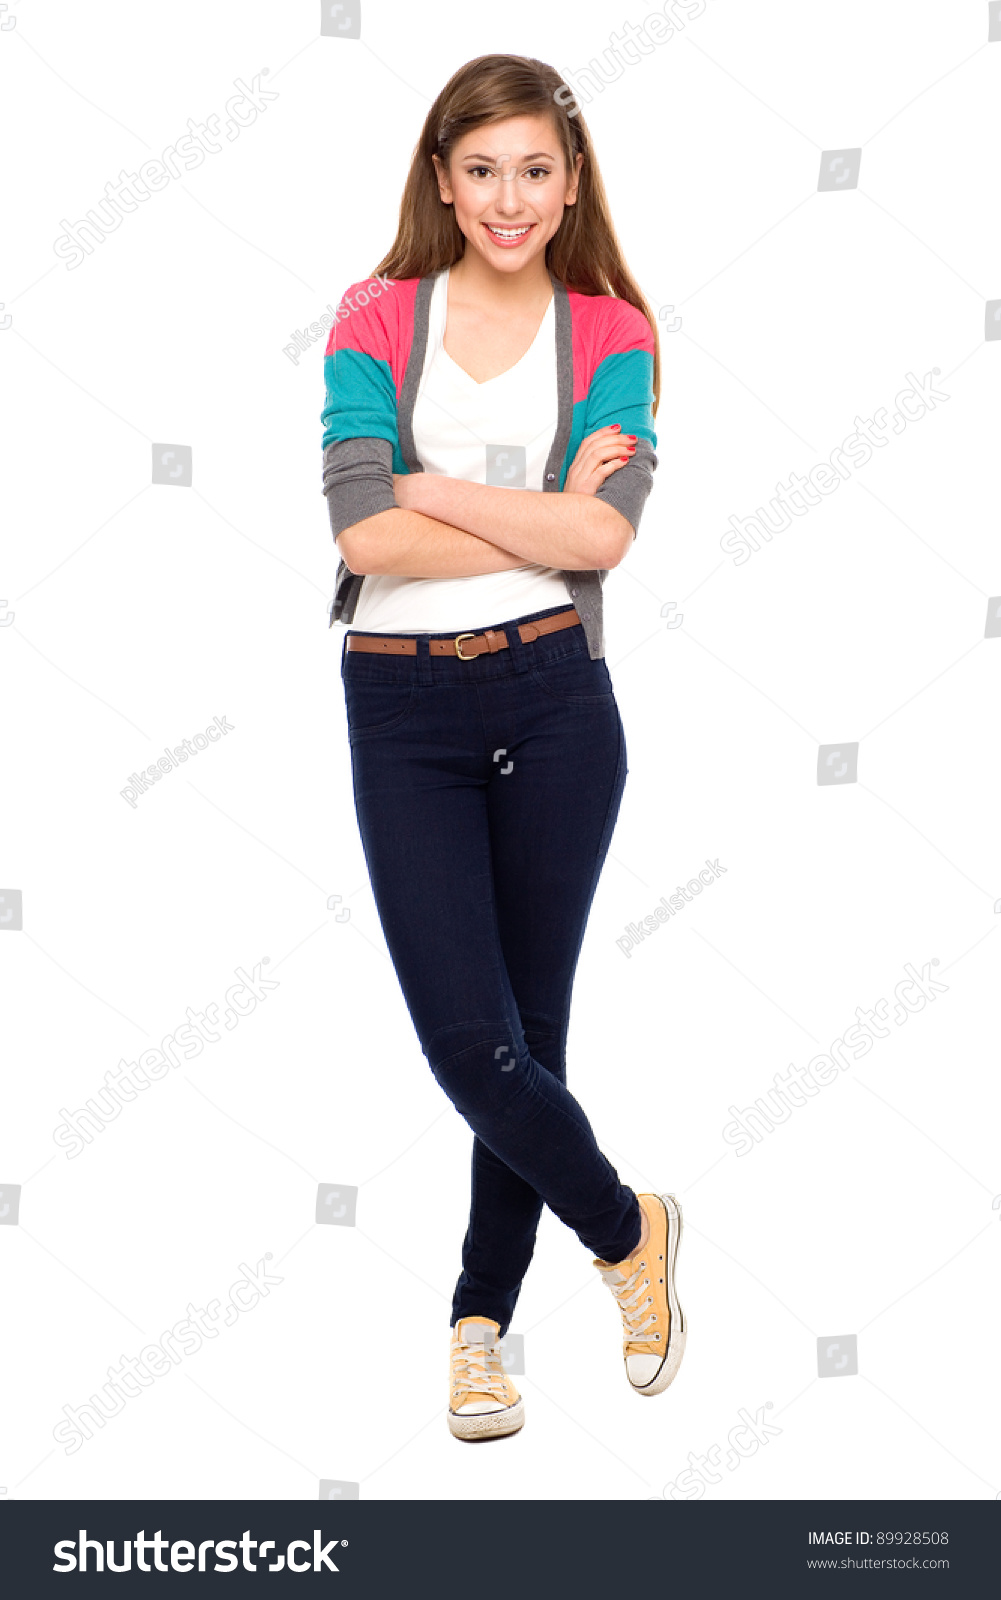 Free teen picture of woman